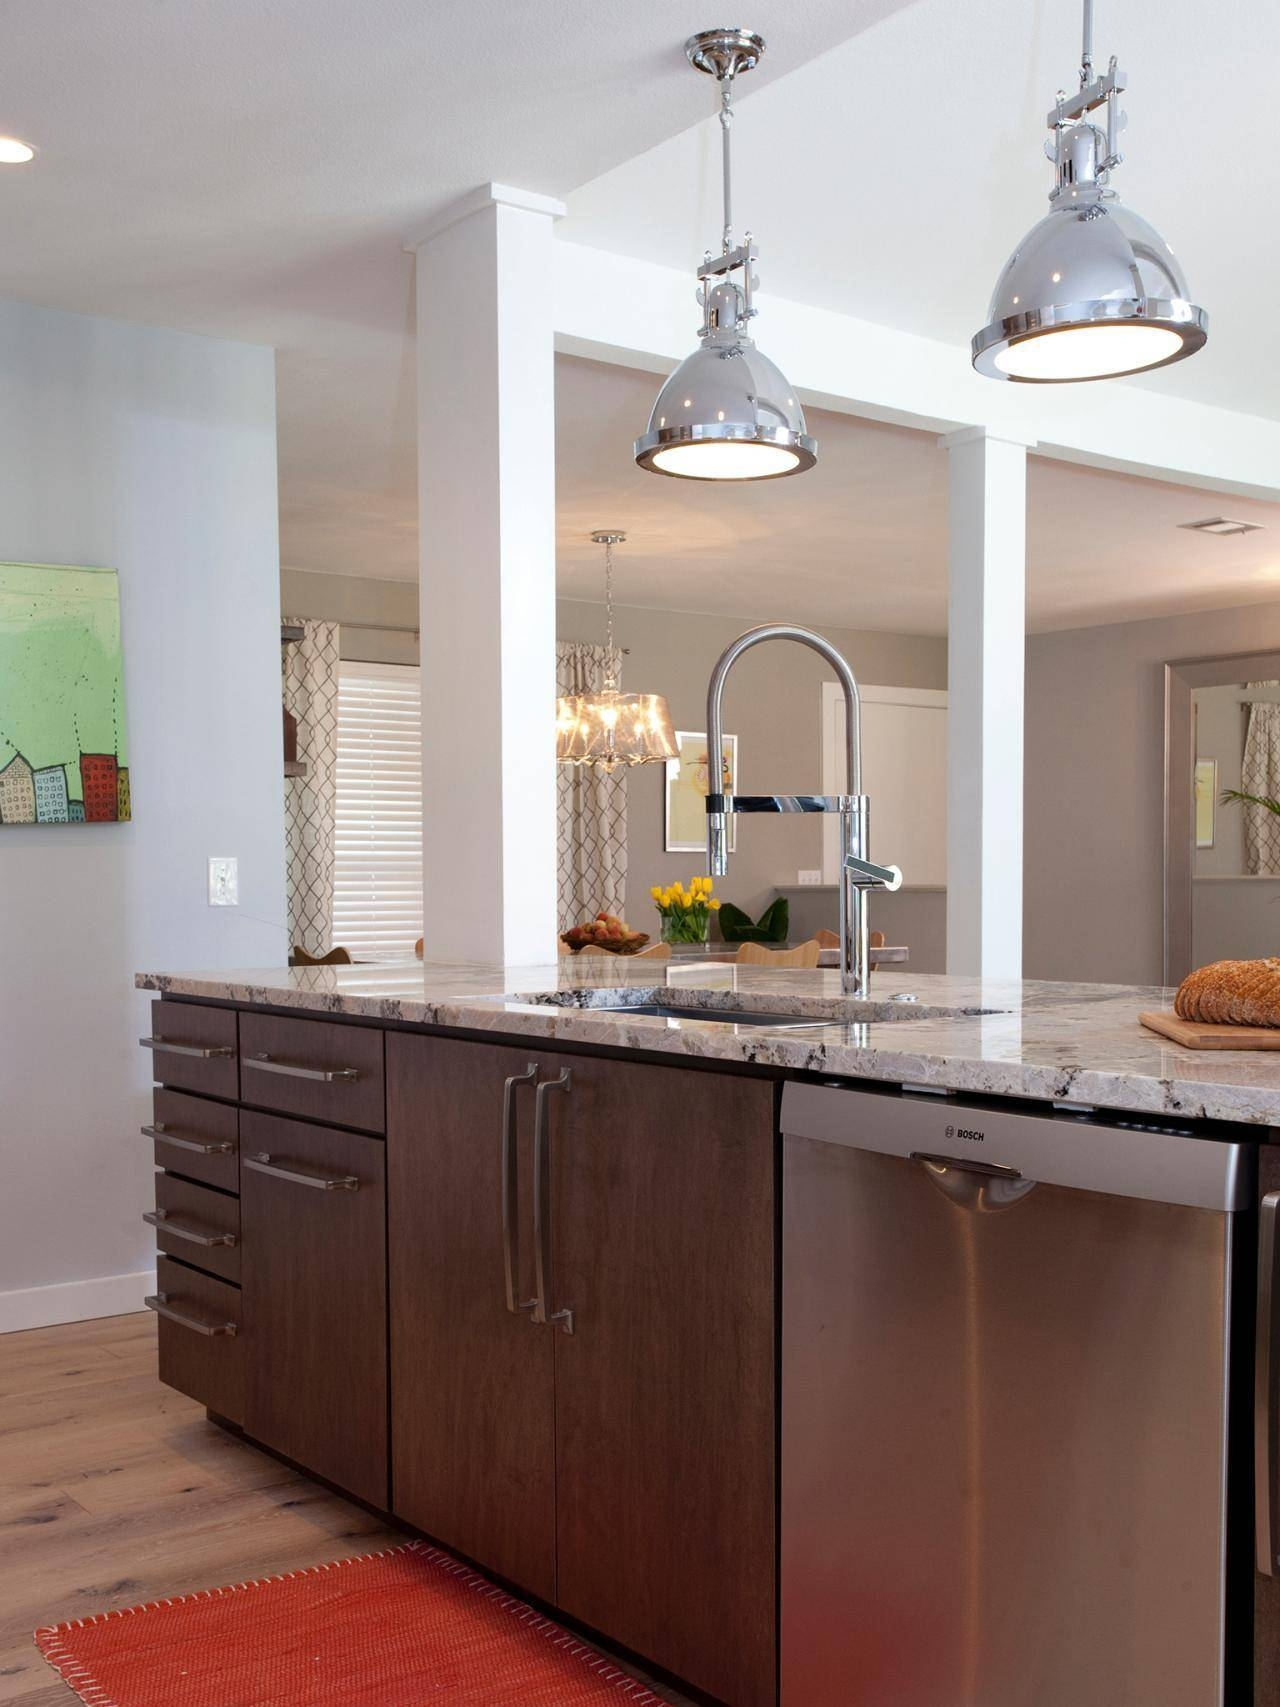 Wonderful Stainless Steel Pendant Light In House Decor Ideas Pertaining To Stainless Steel Kitchen Pendant Lights (View 15 of 15)